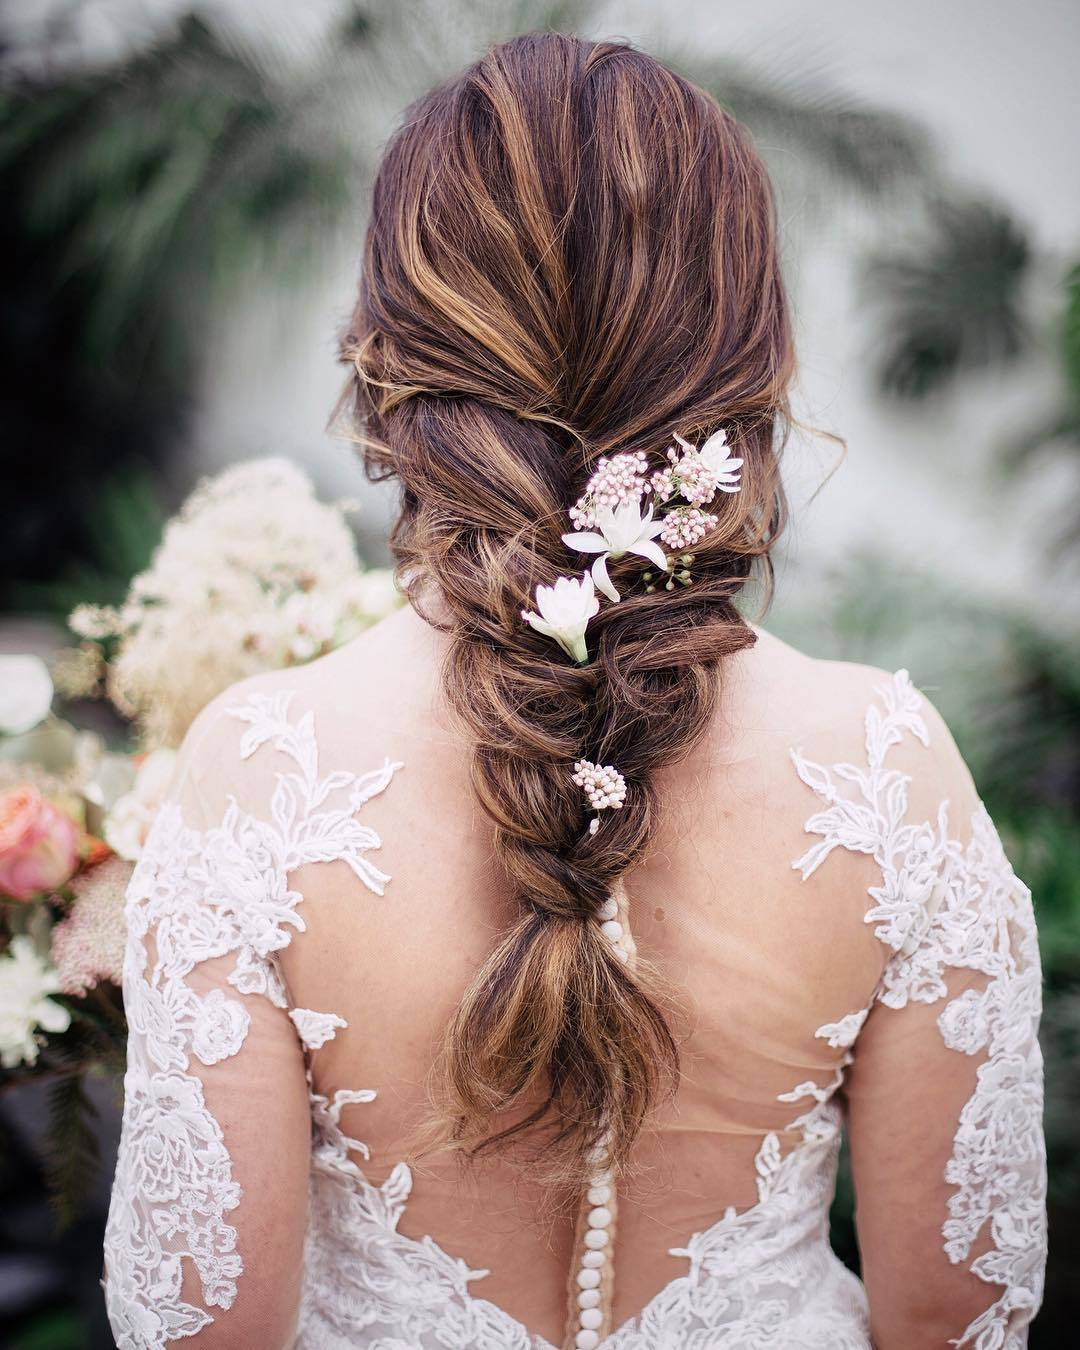 Wedding Hairstyles With Box Braids: 47 Stunning Wedding Hairstyles All Brides Will Love